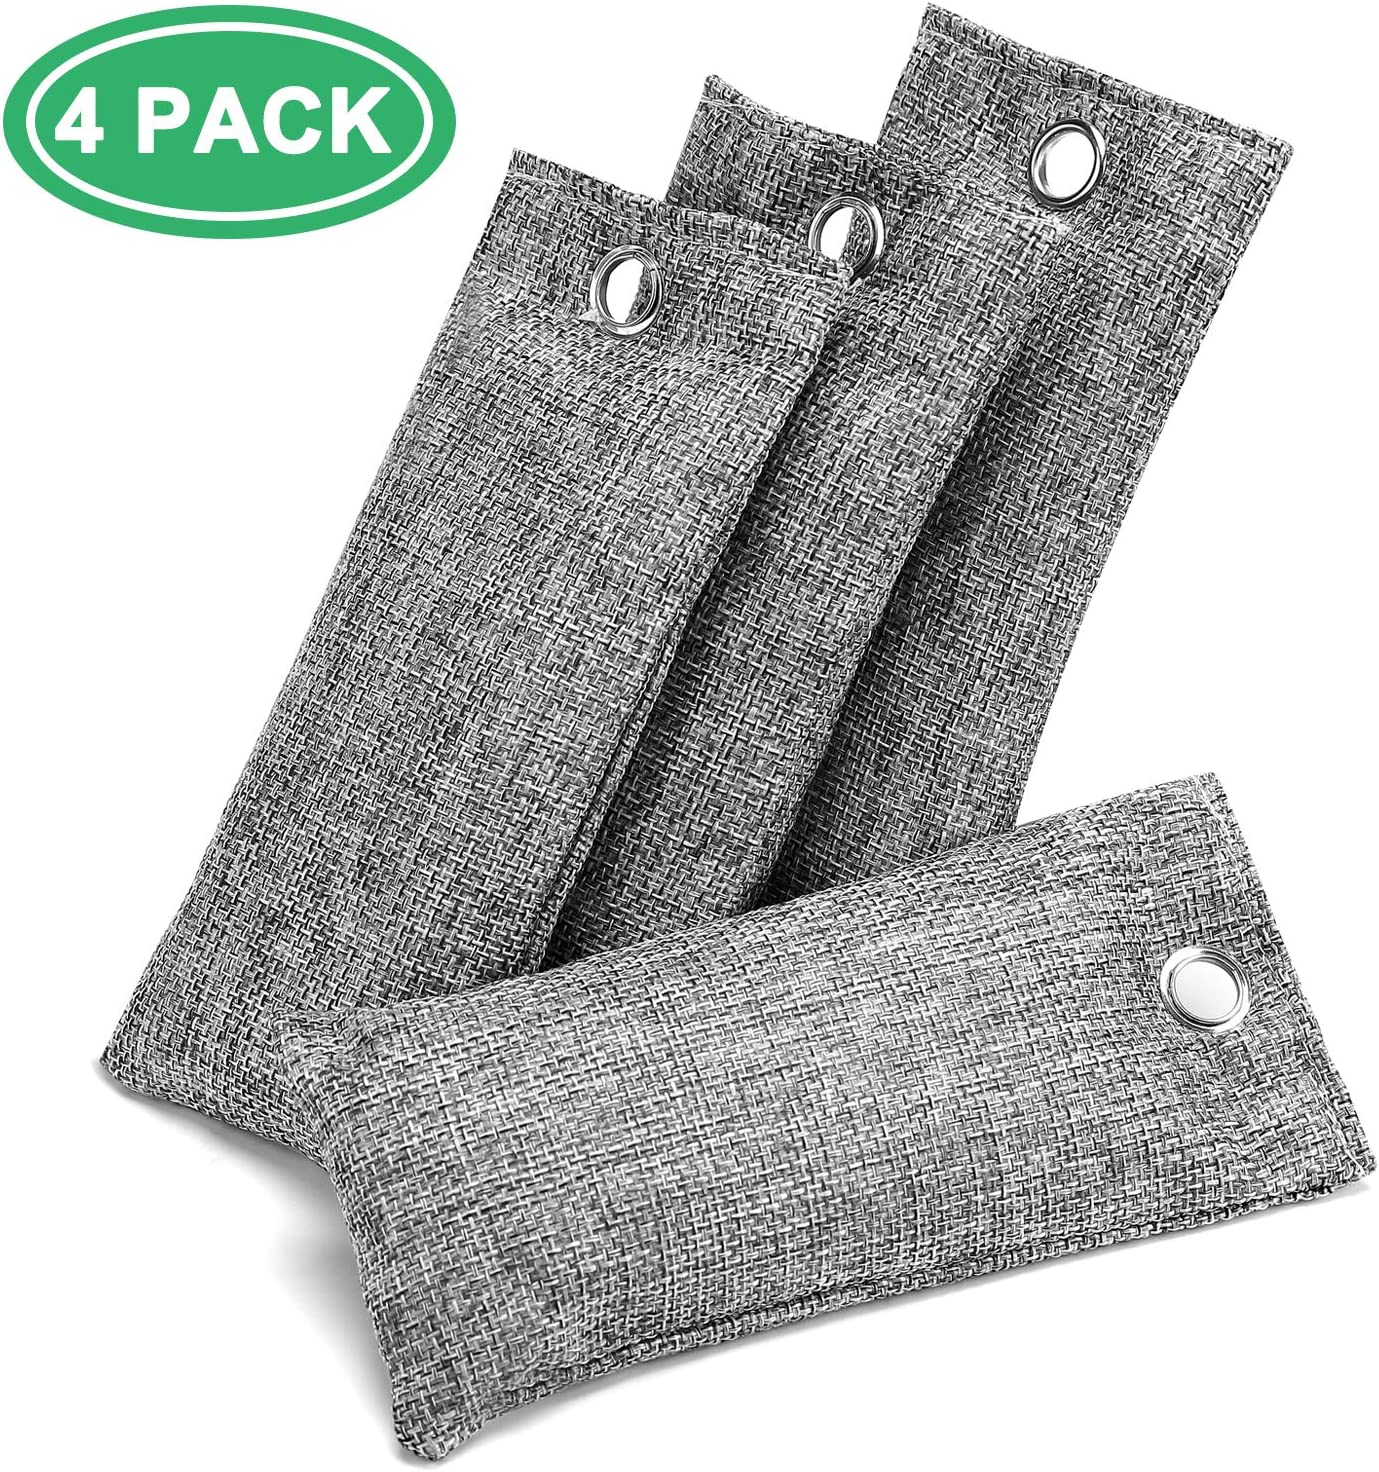 2 Pack Perfect for Shoes Bamboo Activated Charcoal Odor Absorbers